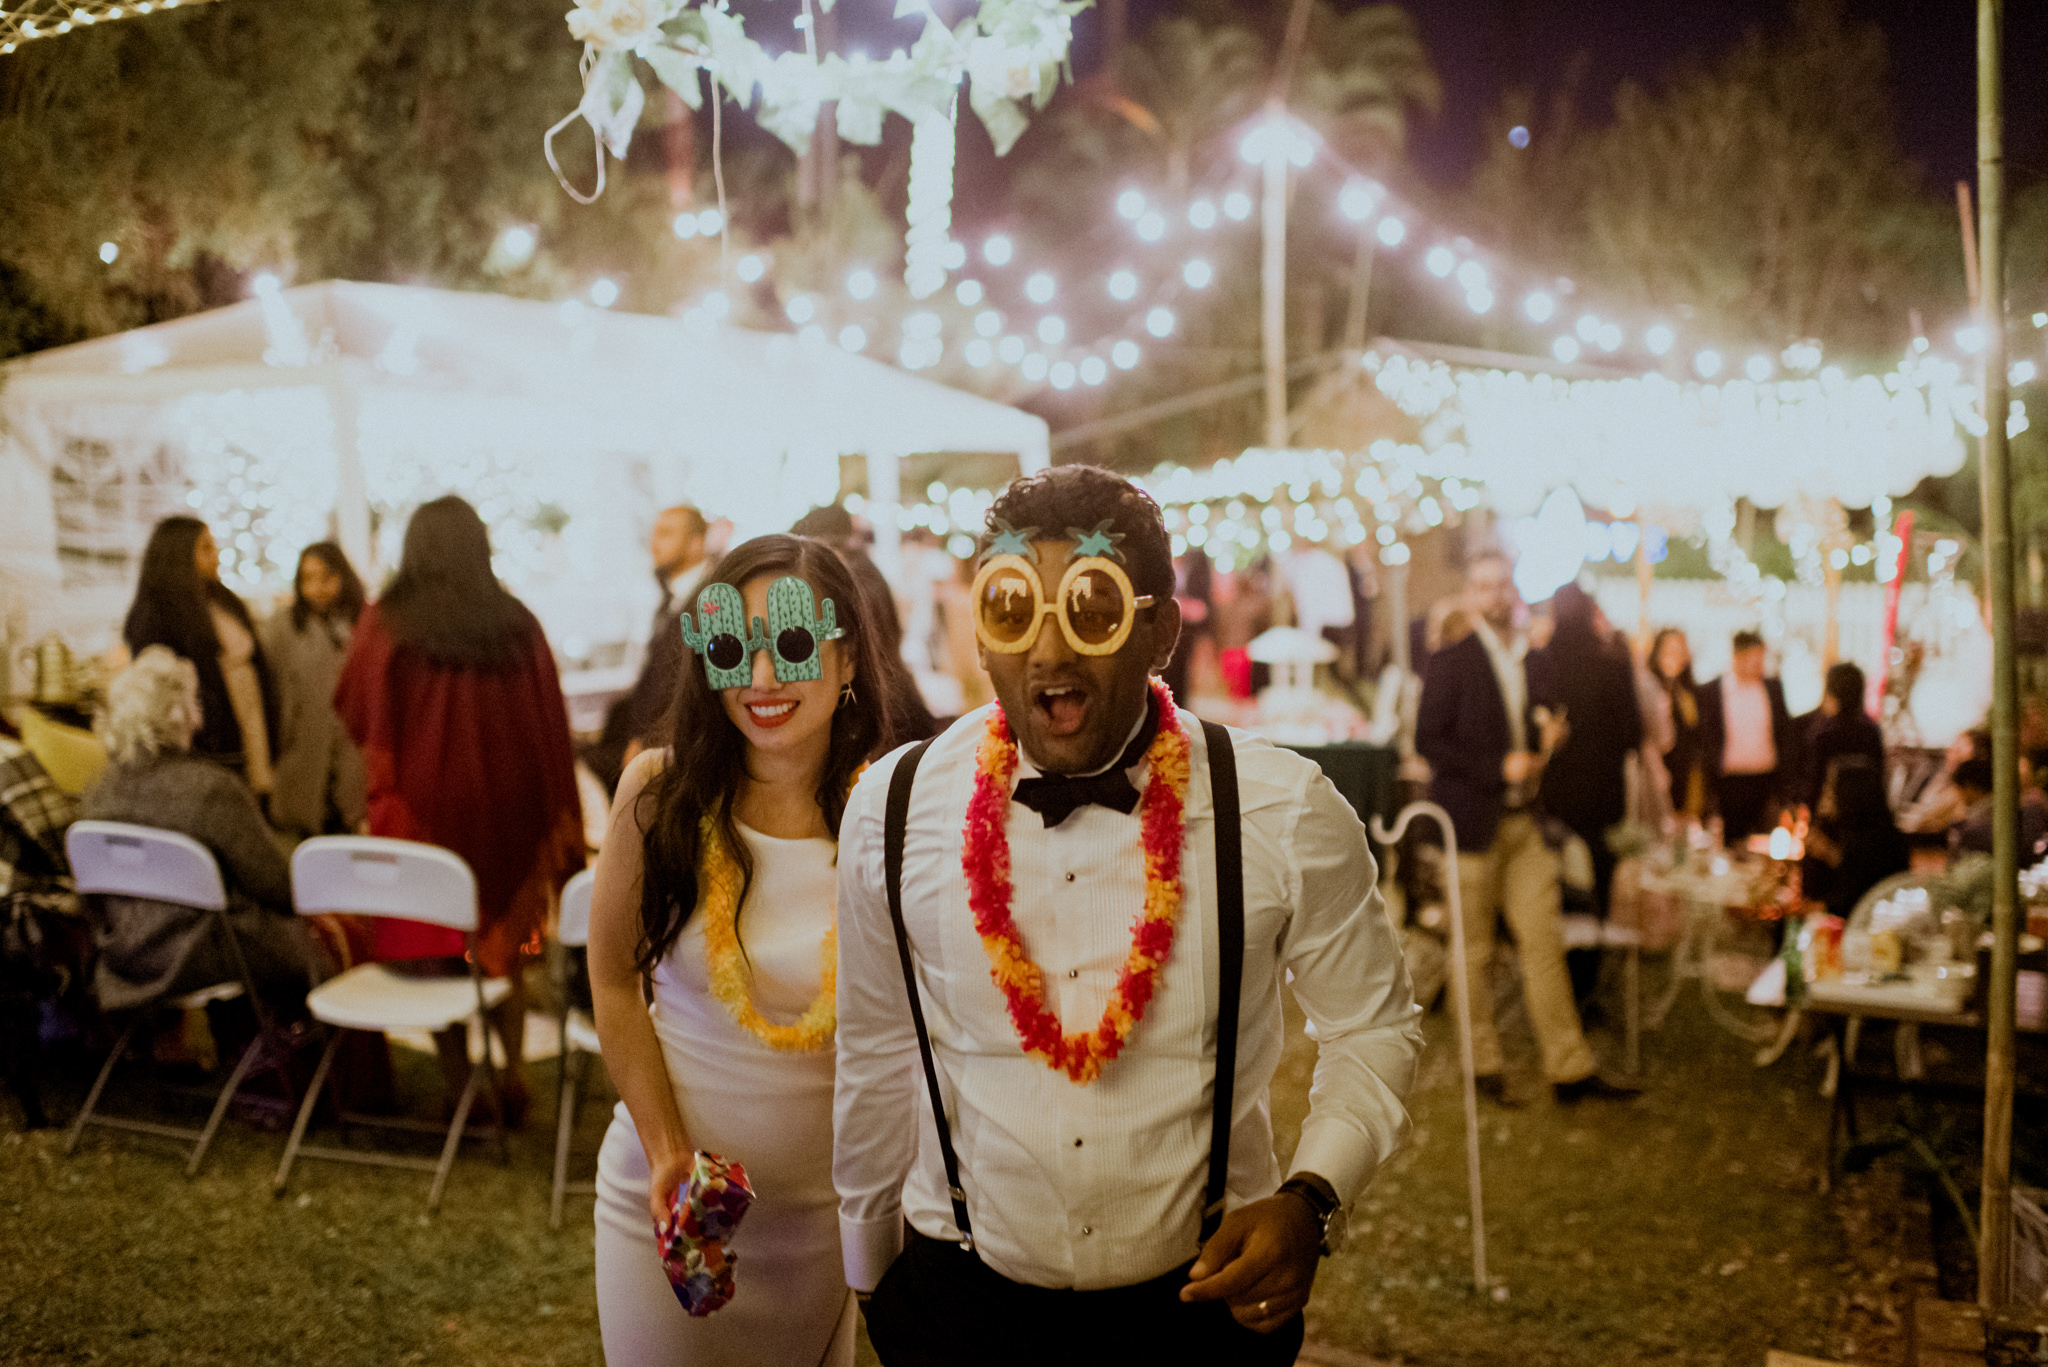 Bride and groom wearing novelty party accessories walk excitedly